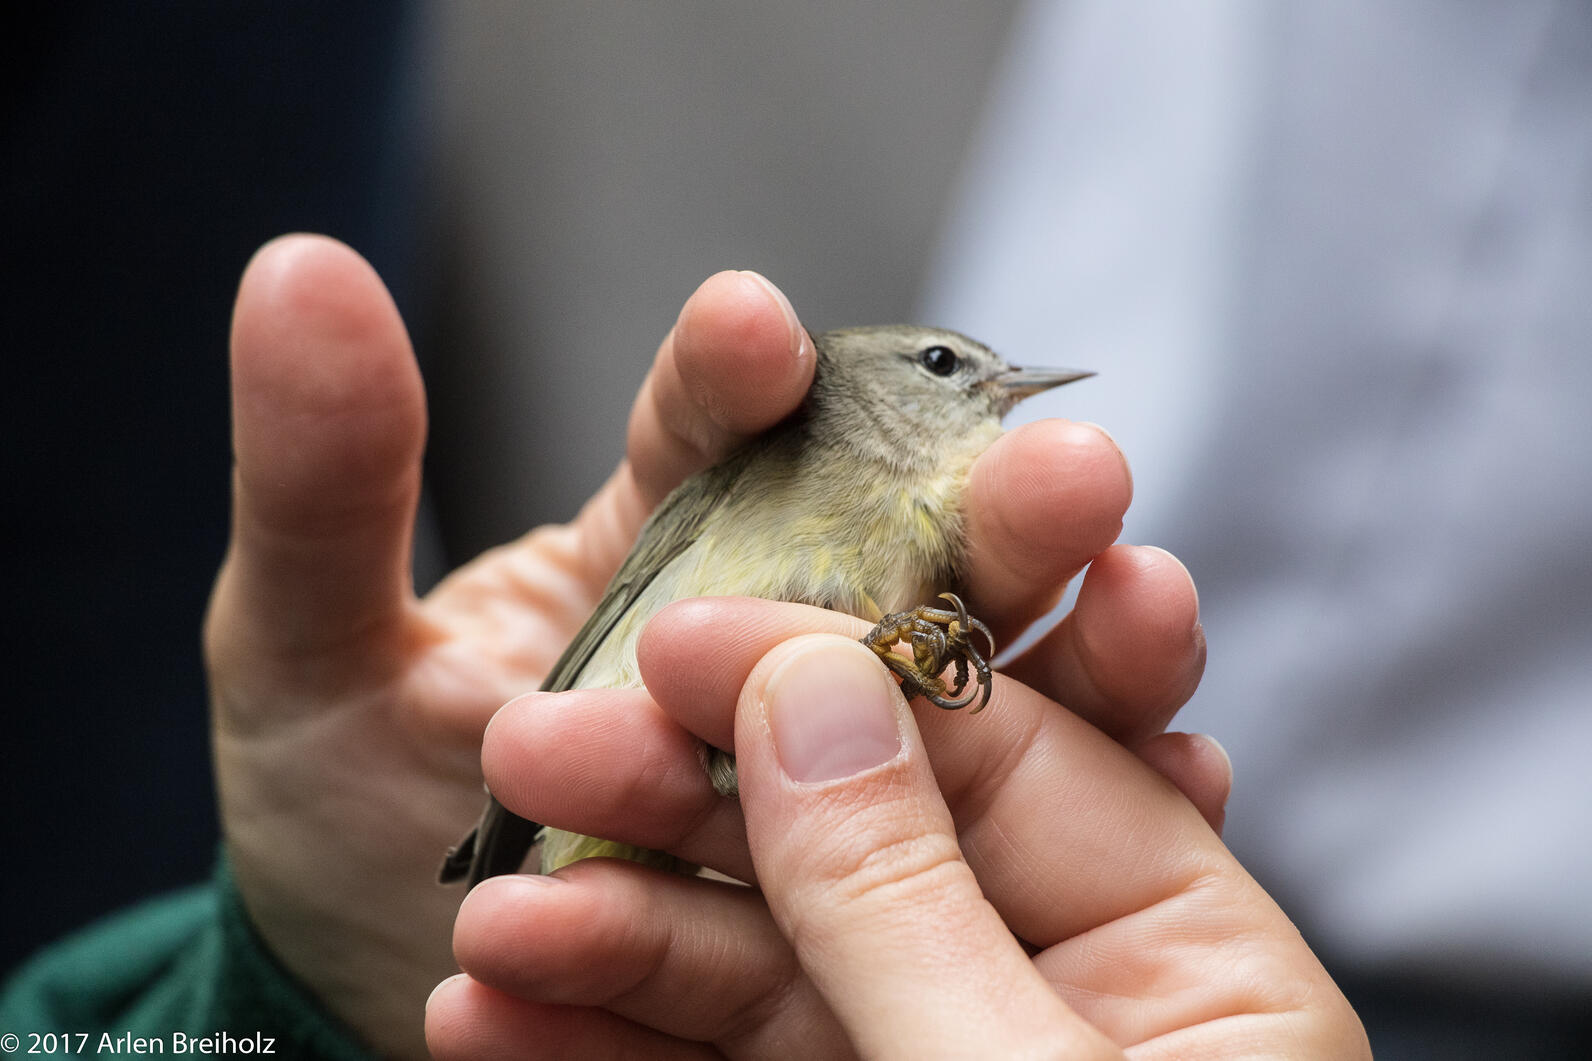 A Tennessee Warbler prepares to be banded.